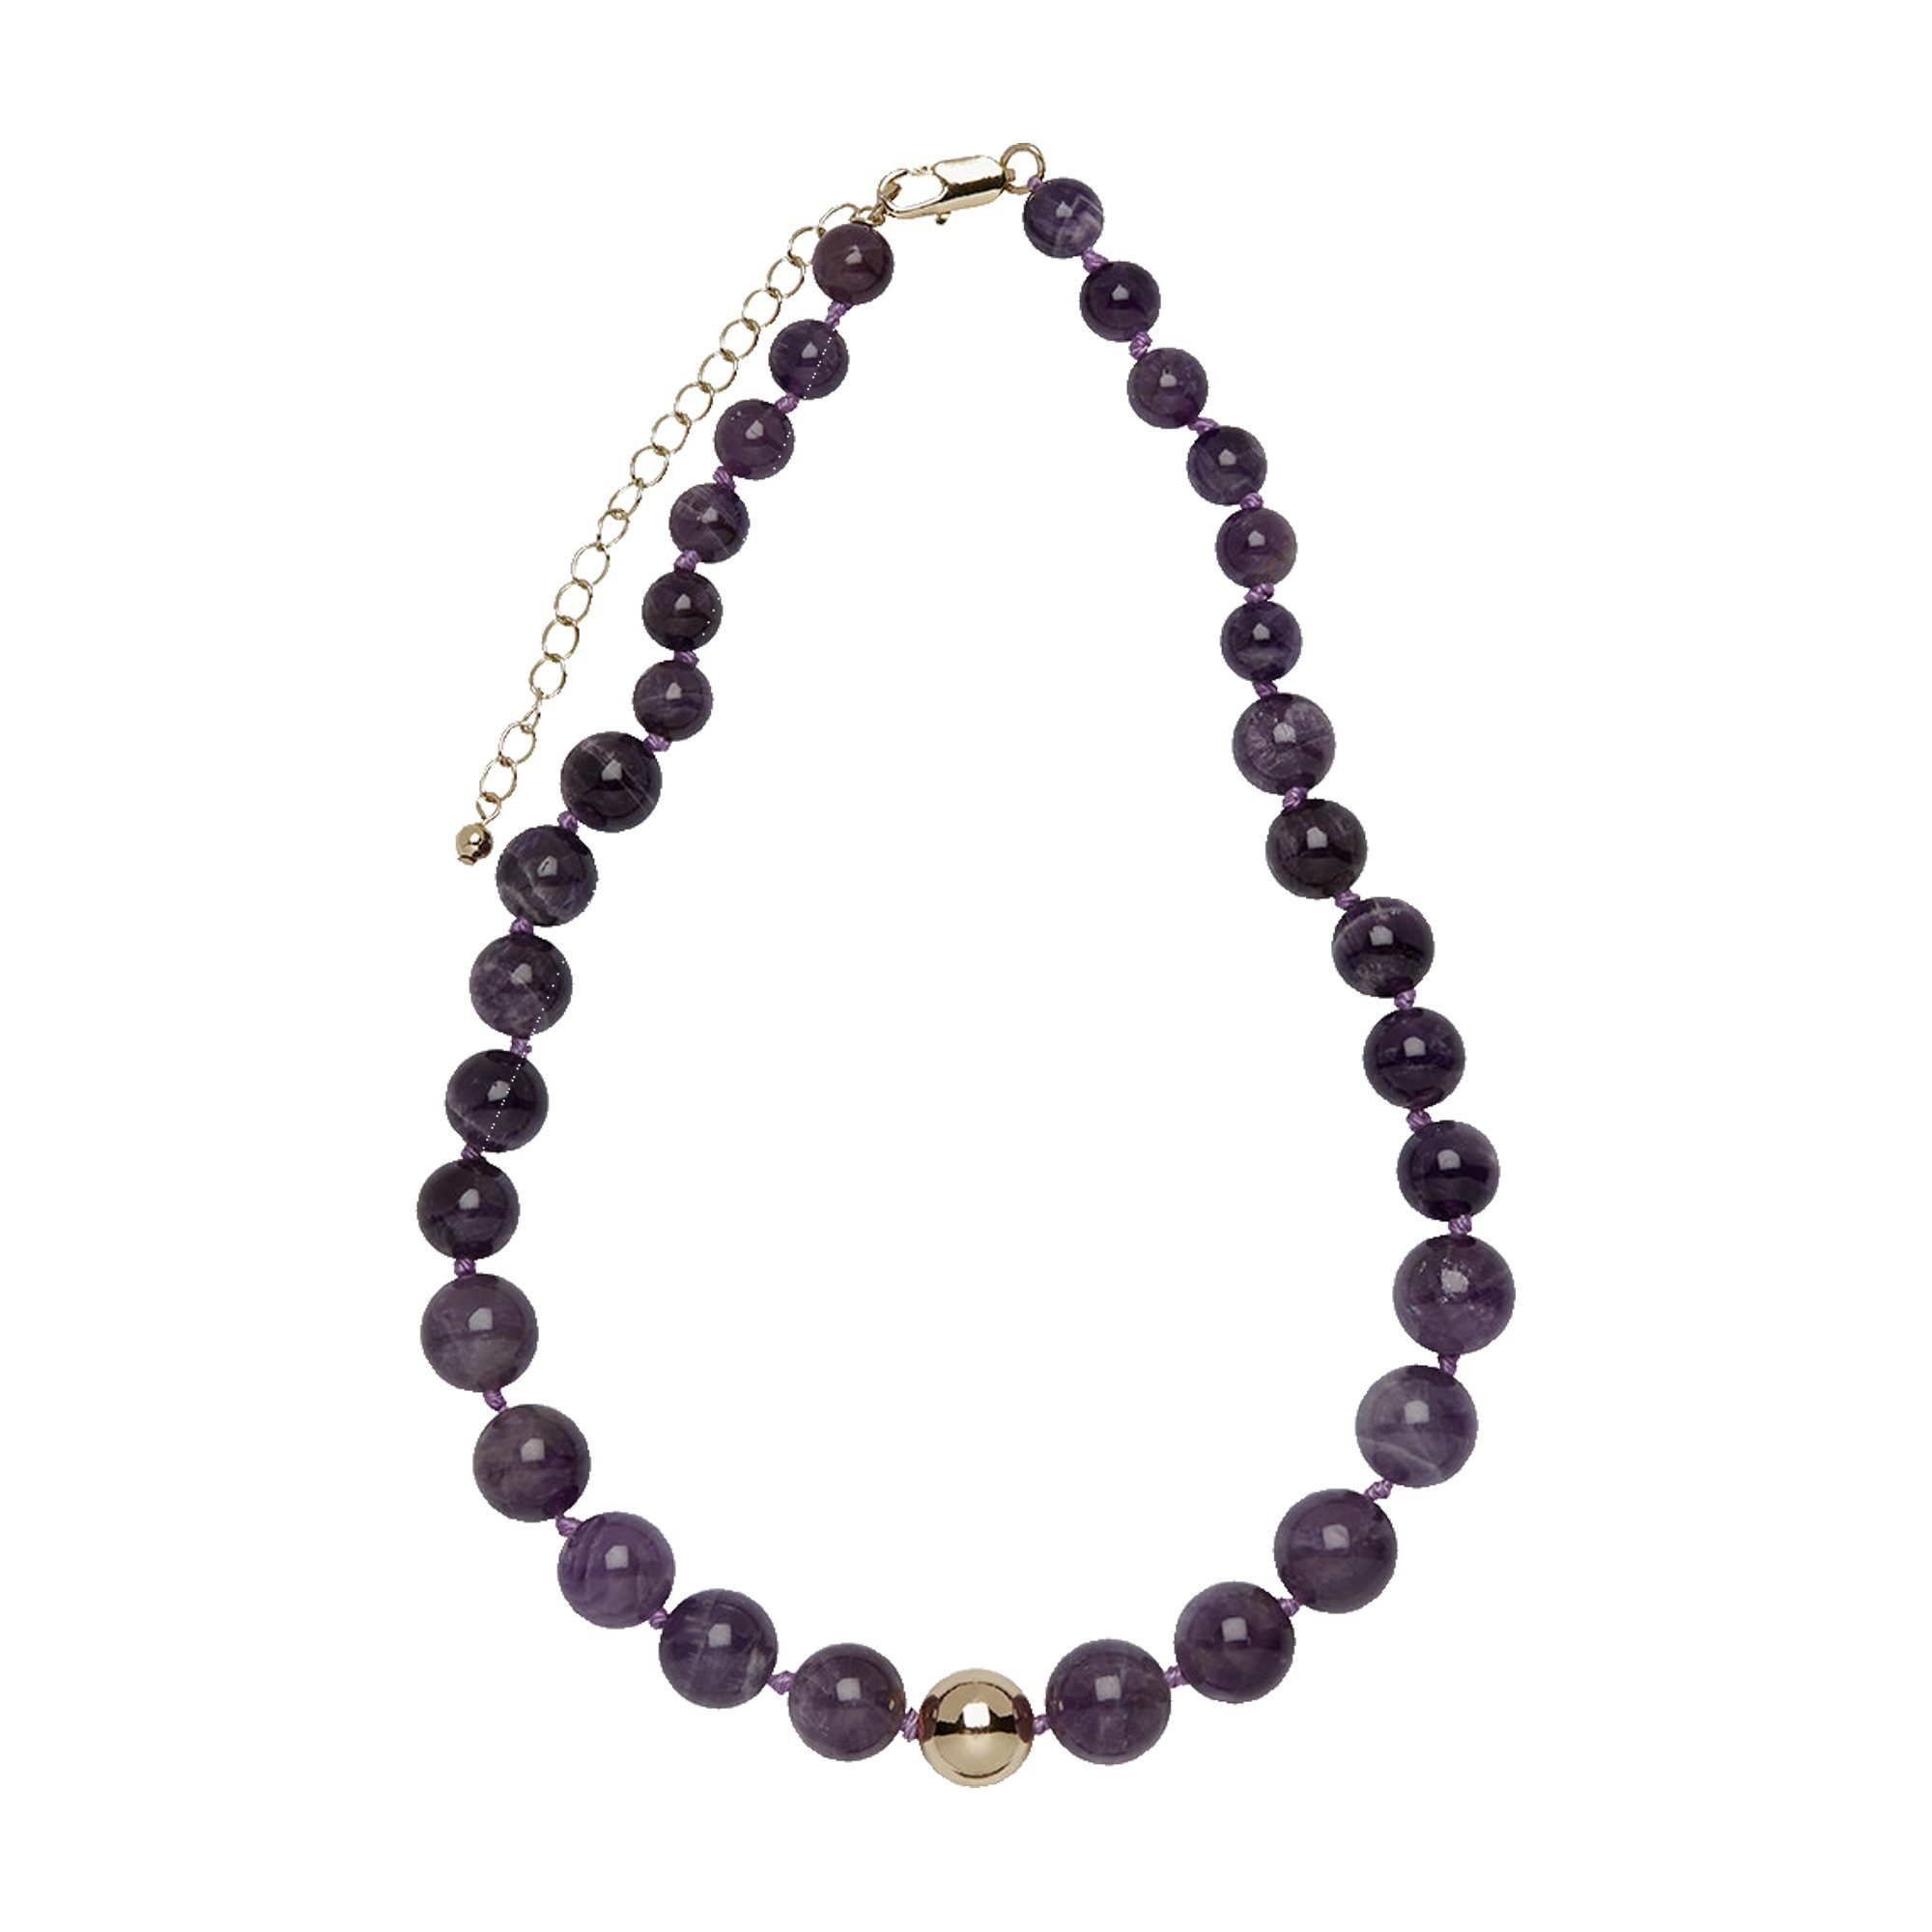 Buckley London Collier »Messing vergoldet mit Amethyst«